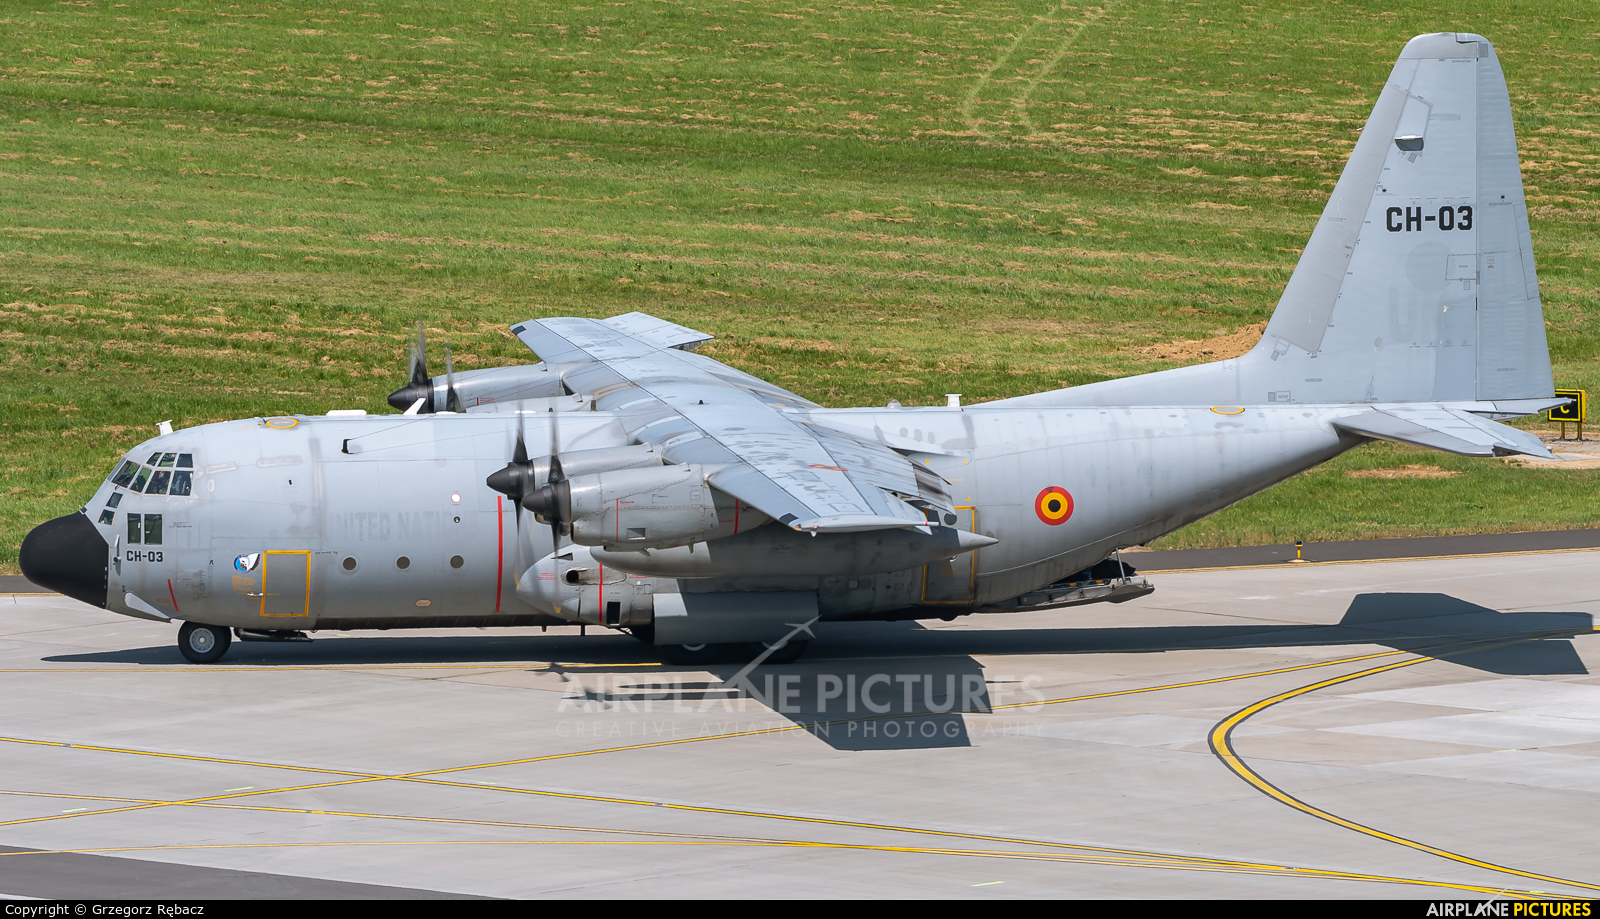 Belgium - Air Force CH-03 aircraft at Kraków - John Paul II Intl